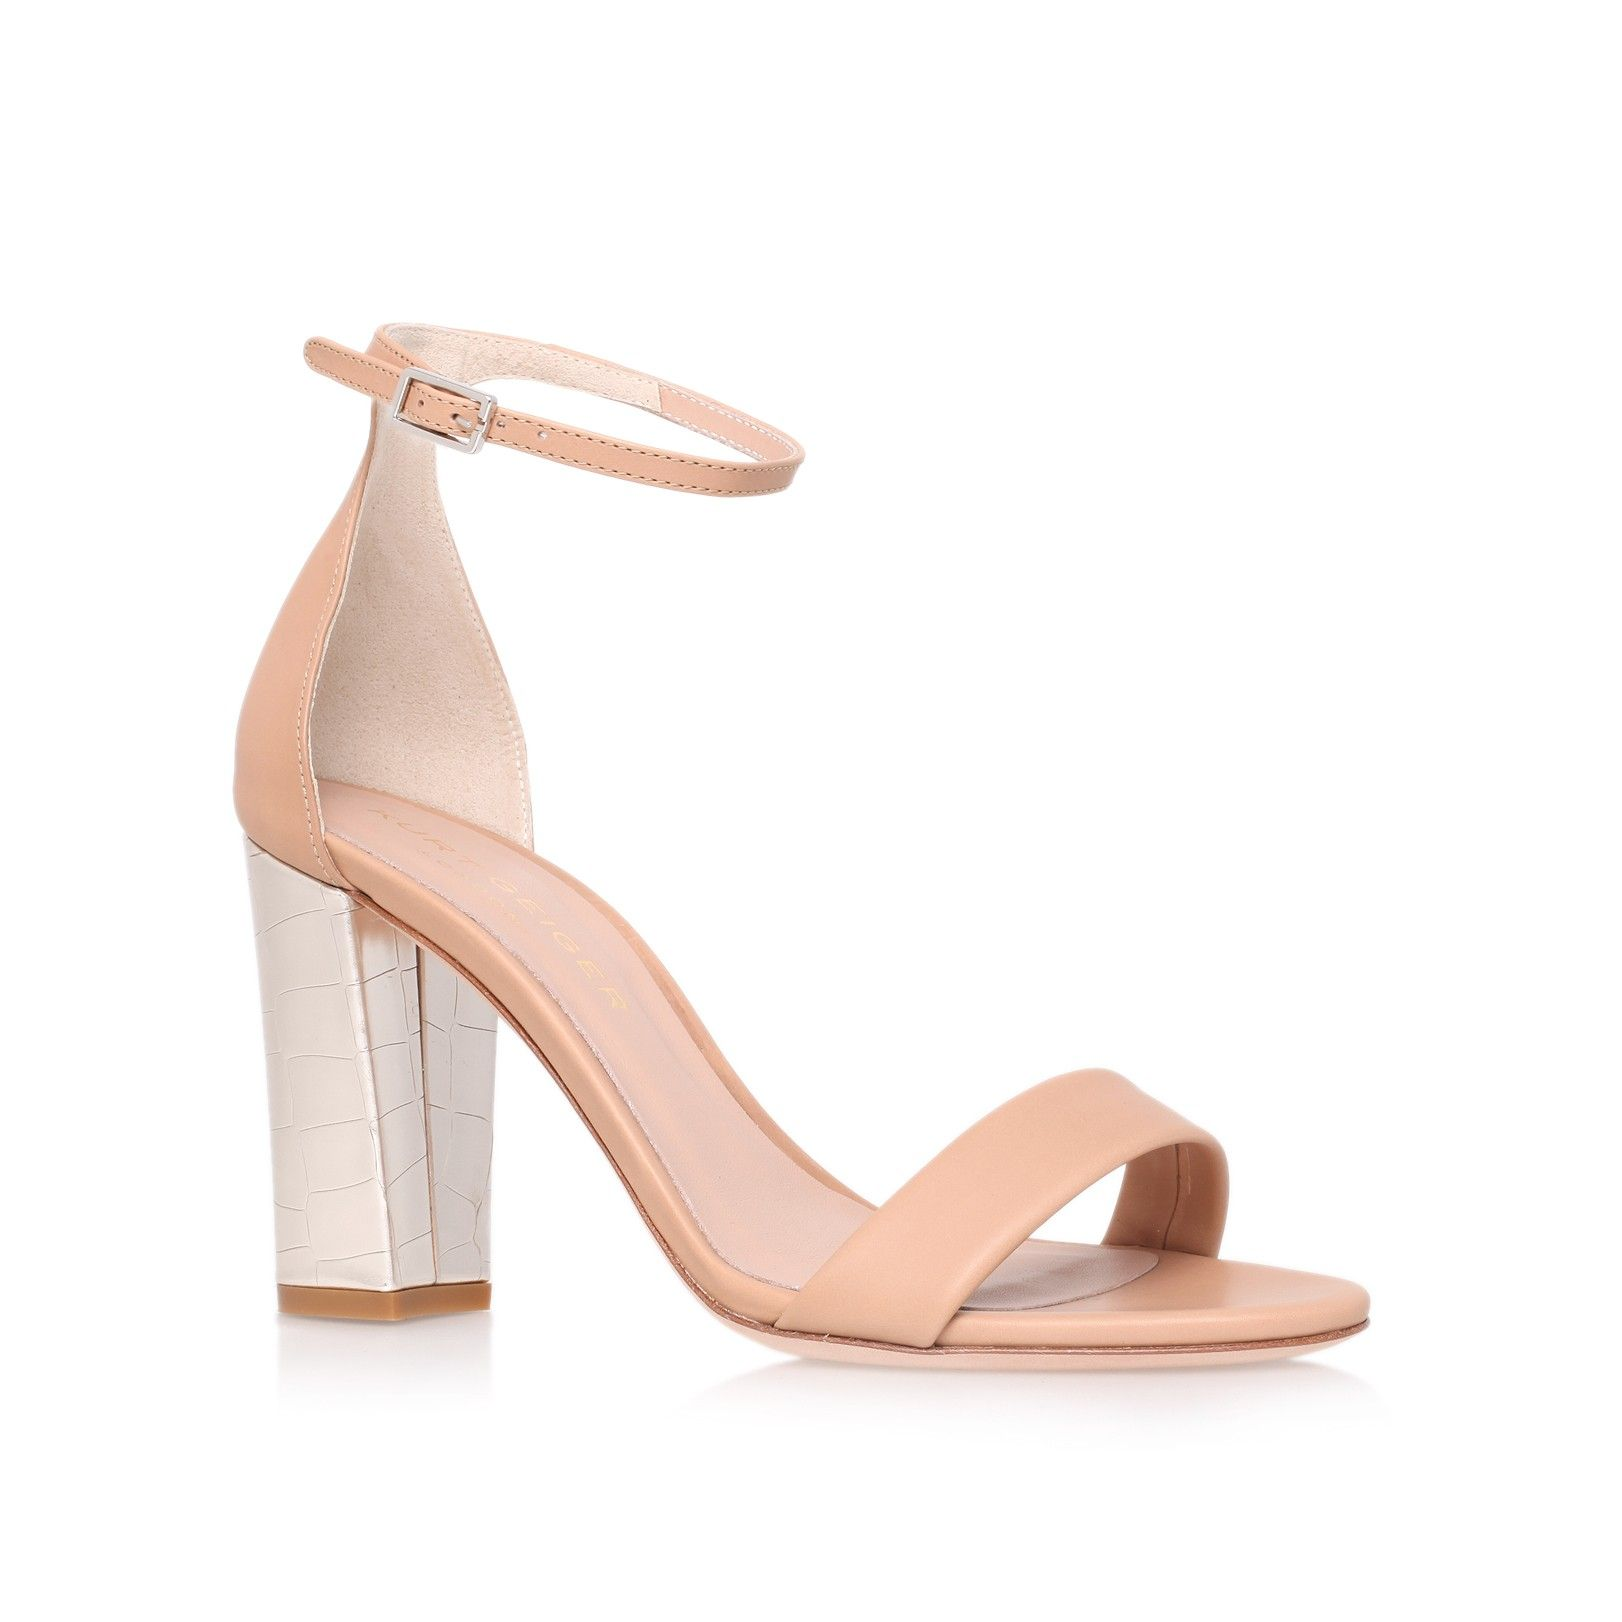 Cross Strap Metallic Block Heel Sandal - White Kurt Geiger VrrJ7